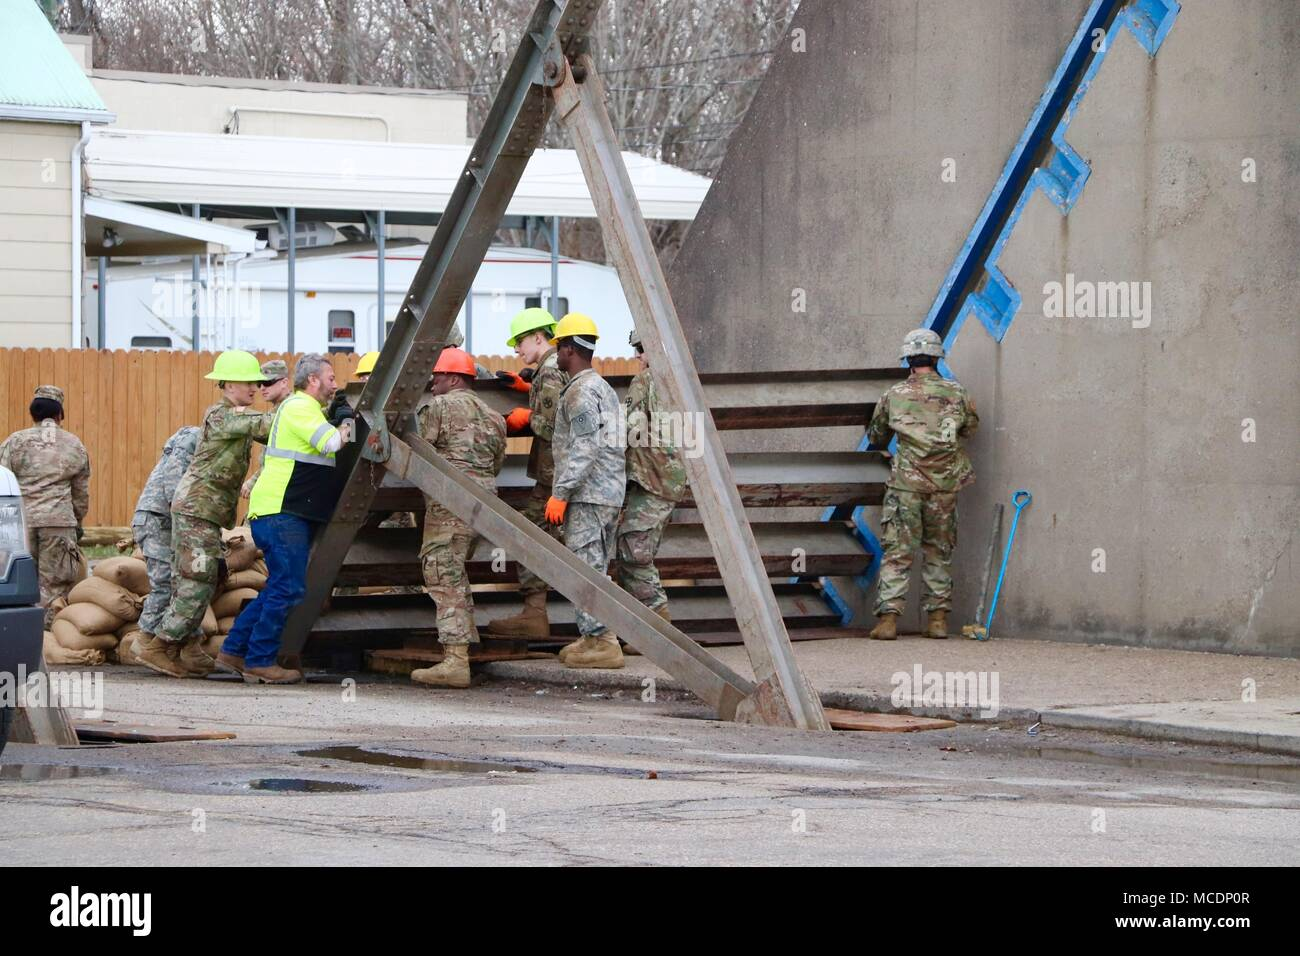 Portsmouth Ohio High Resolution Stock Photography And Images Alamy